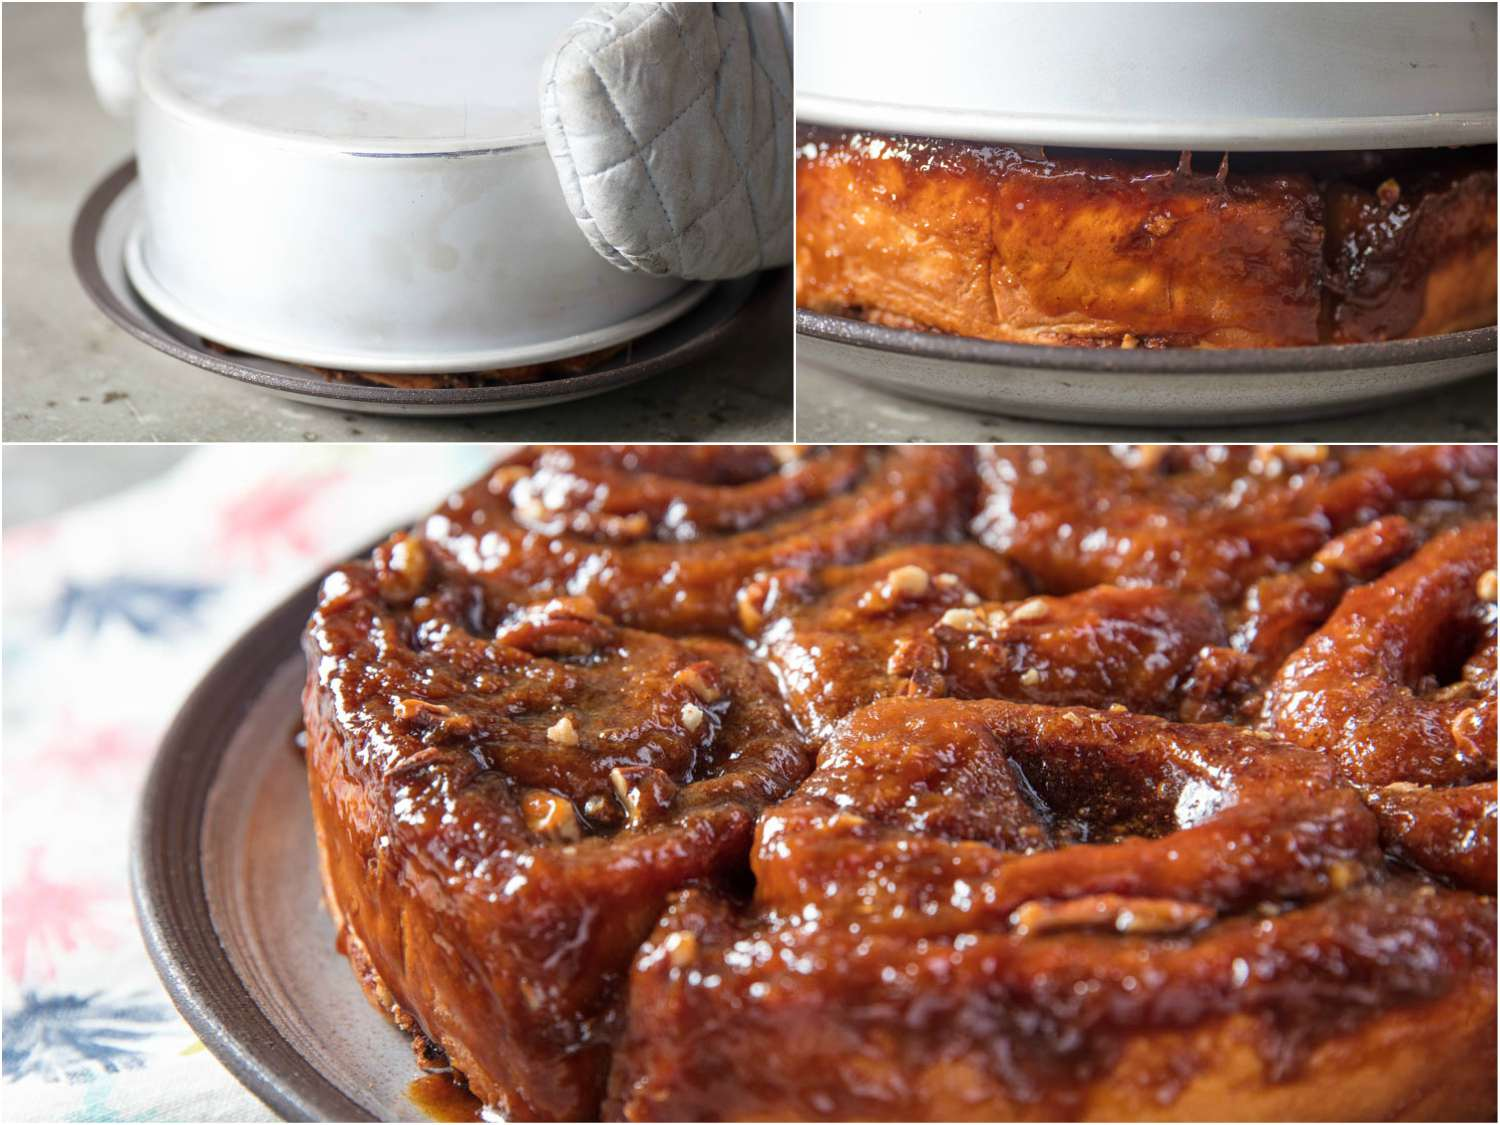 20170914-cinnamon-buns-vicky-wasik-icing-sticky-out-of-pan.jpg